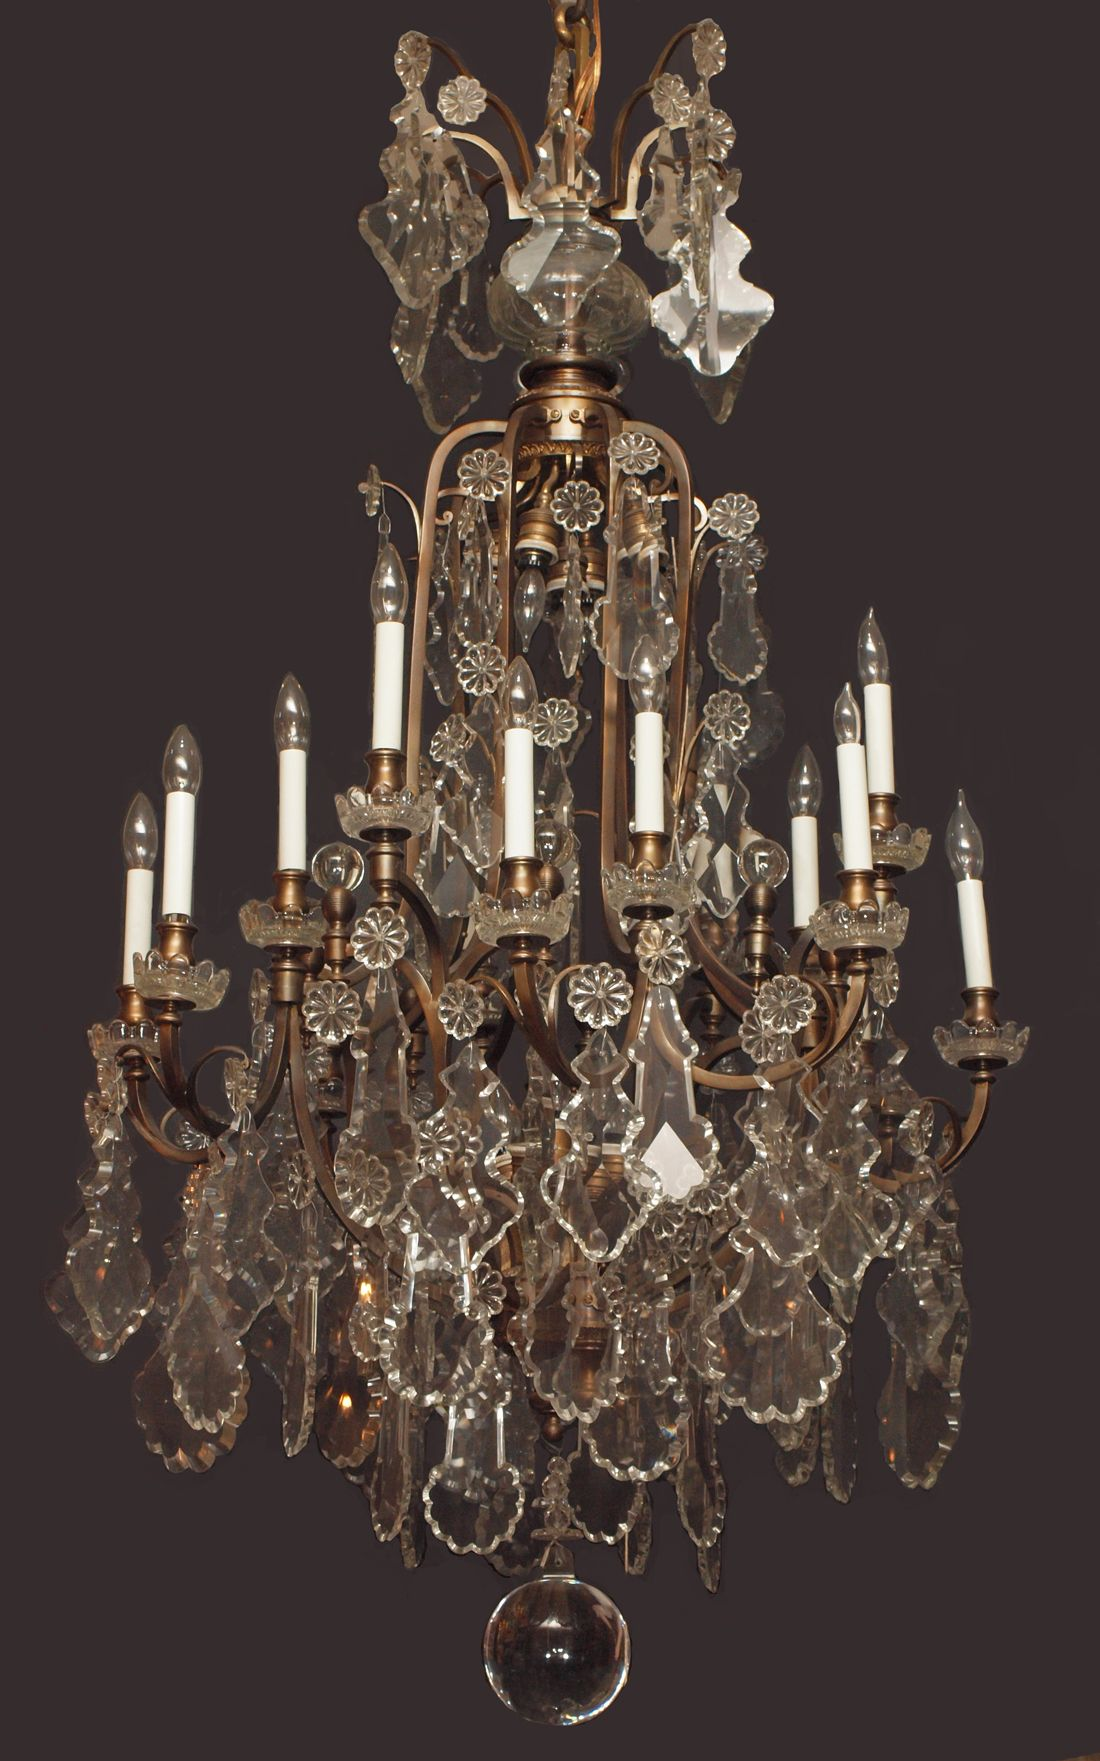 Chandeliers | Chandeliers, Crystals and Lights